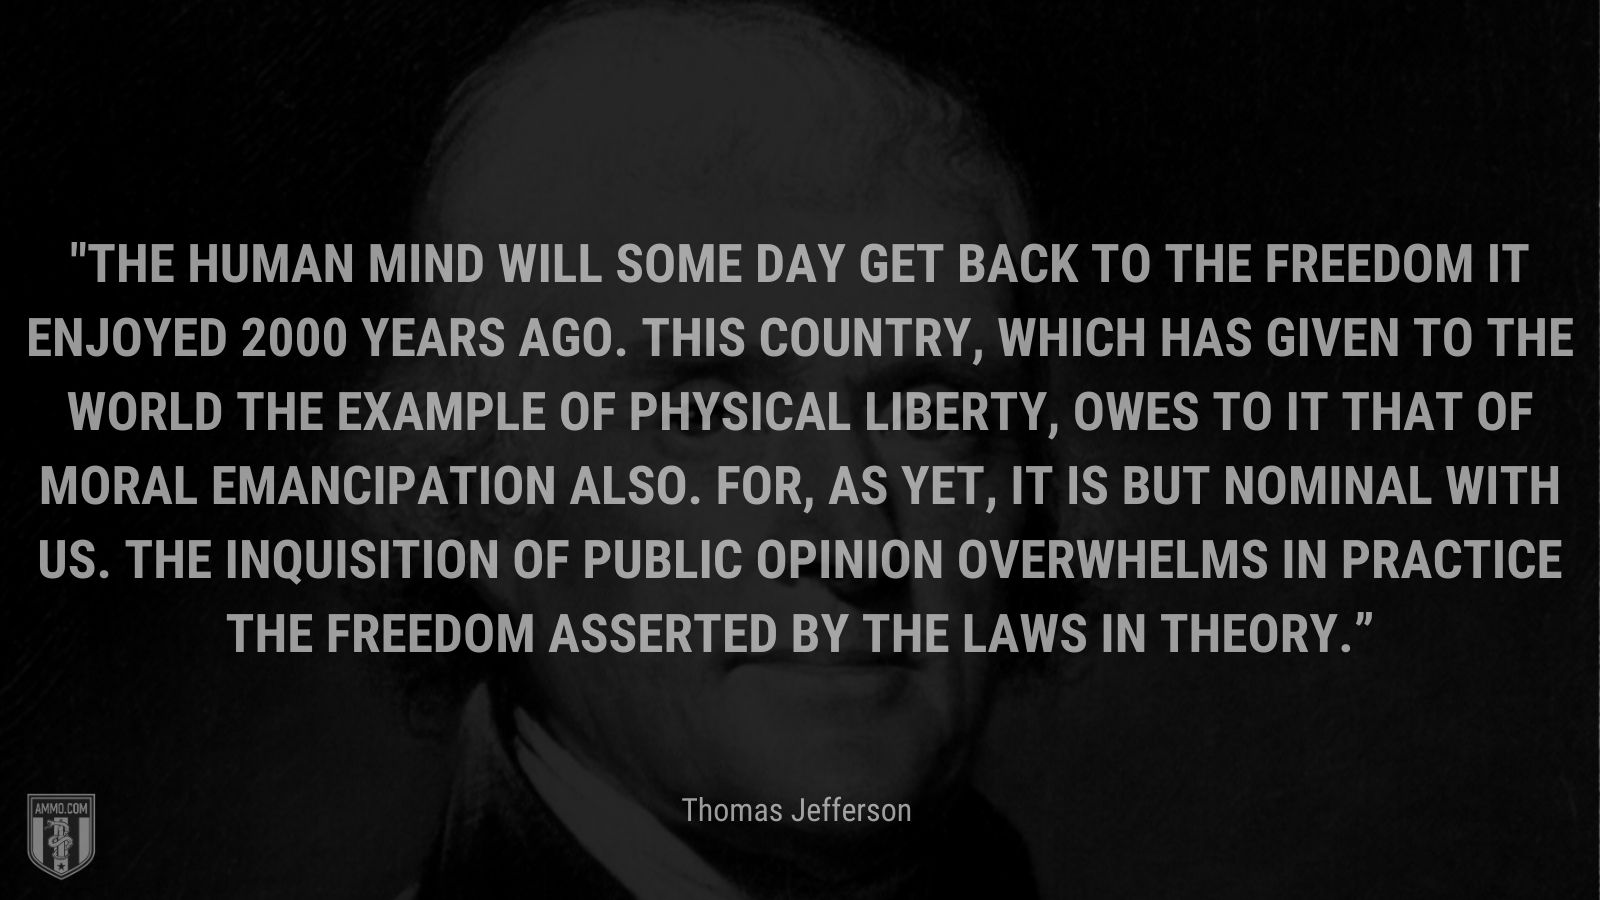 """""""The human mind will some day get back to the freedom it enjoyed 2000 years ago. This country, which has given to the world the example of physical liberty, owes to it that of moral emancipation also. For, as yet, it is but nominal with us. The inquisition of public opinion overwhelms in practice the freedom asserted by the laws in theory."""" - Thomas Jefferson"""